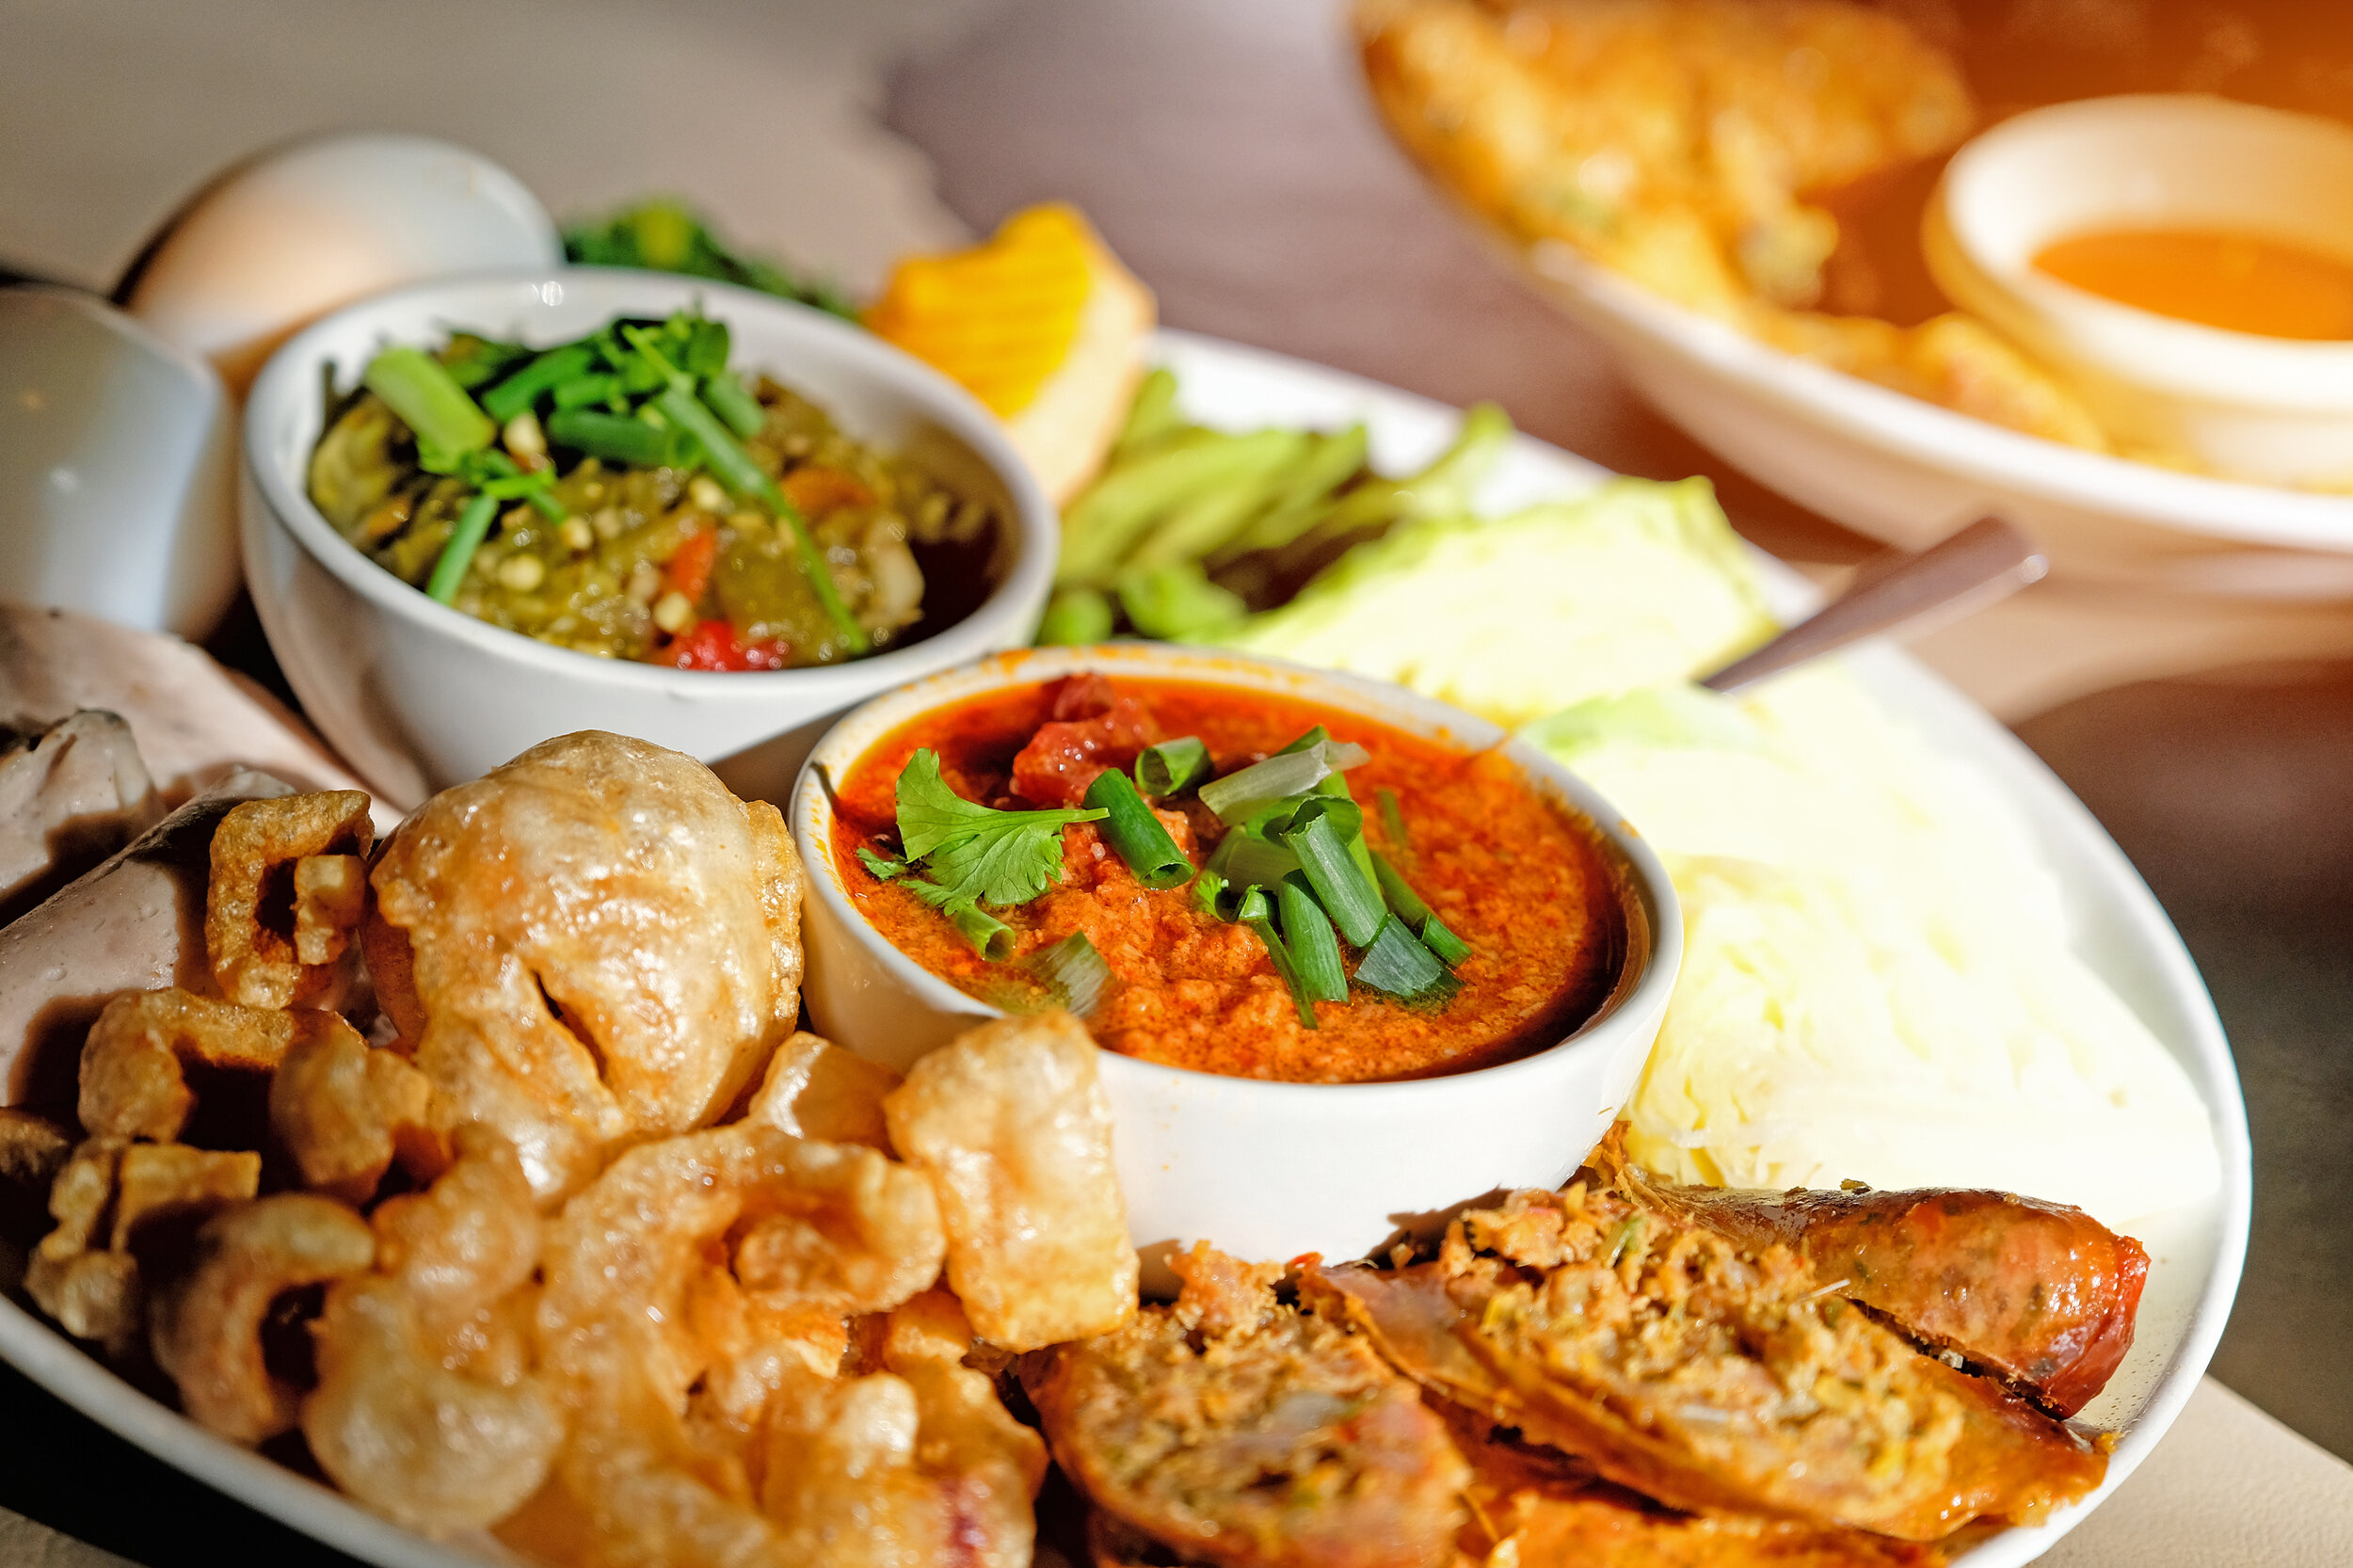 Sai Oua with red and green chili dip at Chiang Mai restaurant